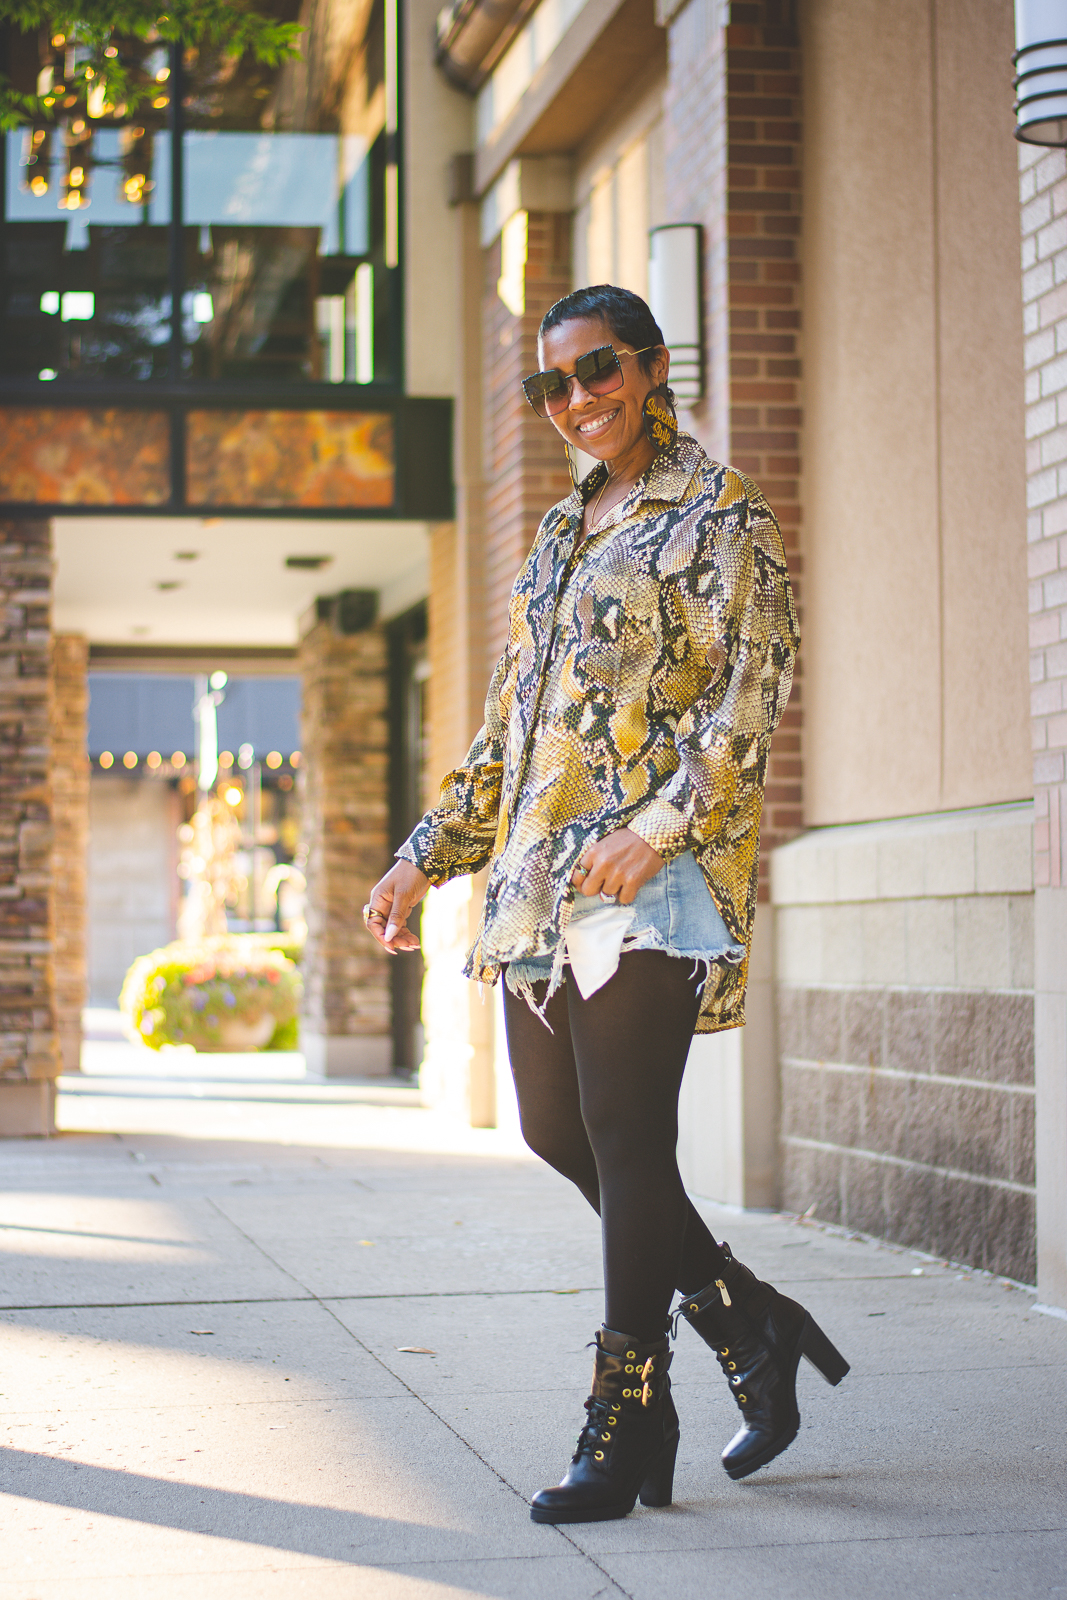 USE WHAT'CHA GOT!, OUTFIT IDEAS, OUTFIT, OUTFIT POST, Fall 2019, fall outfit ideas, Winter Outfit Idea, Winter 2019, Sweenee Style, Indianapolis Style Blog, Black Girls who blog, Outfit Inspiration, How to wear denim shorts, How to wear button up top, how to wear snakeskin